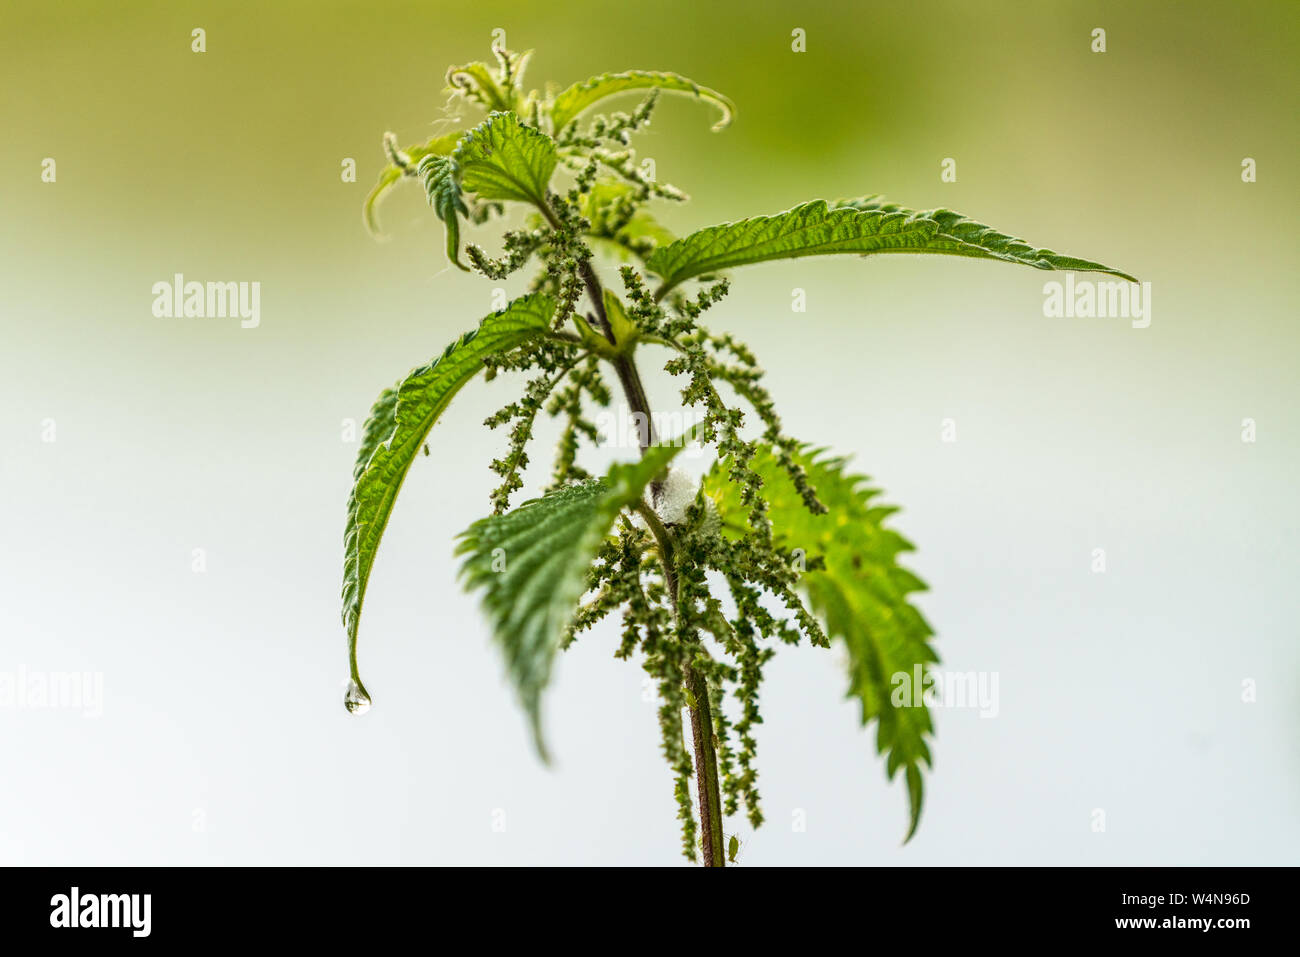 Close up of a stiging nettle (Urtica dioica) with shallow depth of field and a rain drop hanging from a leaf Stock Photo